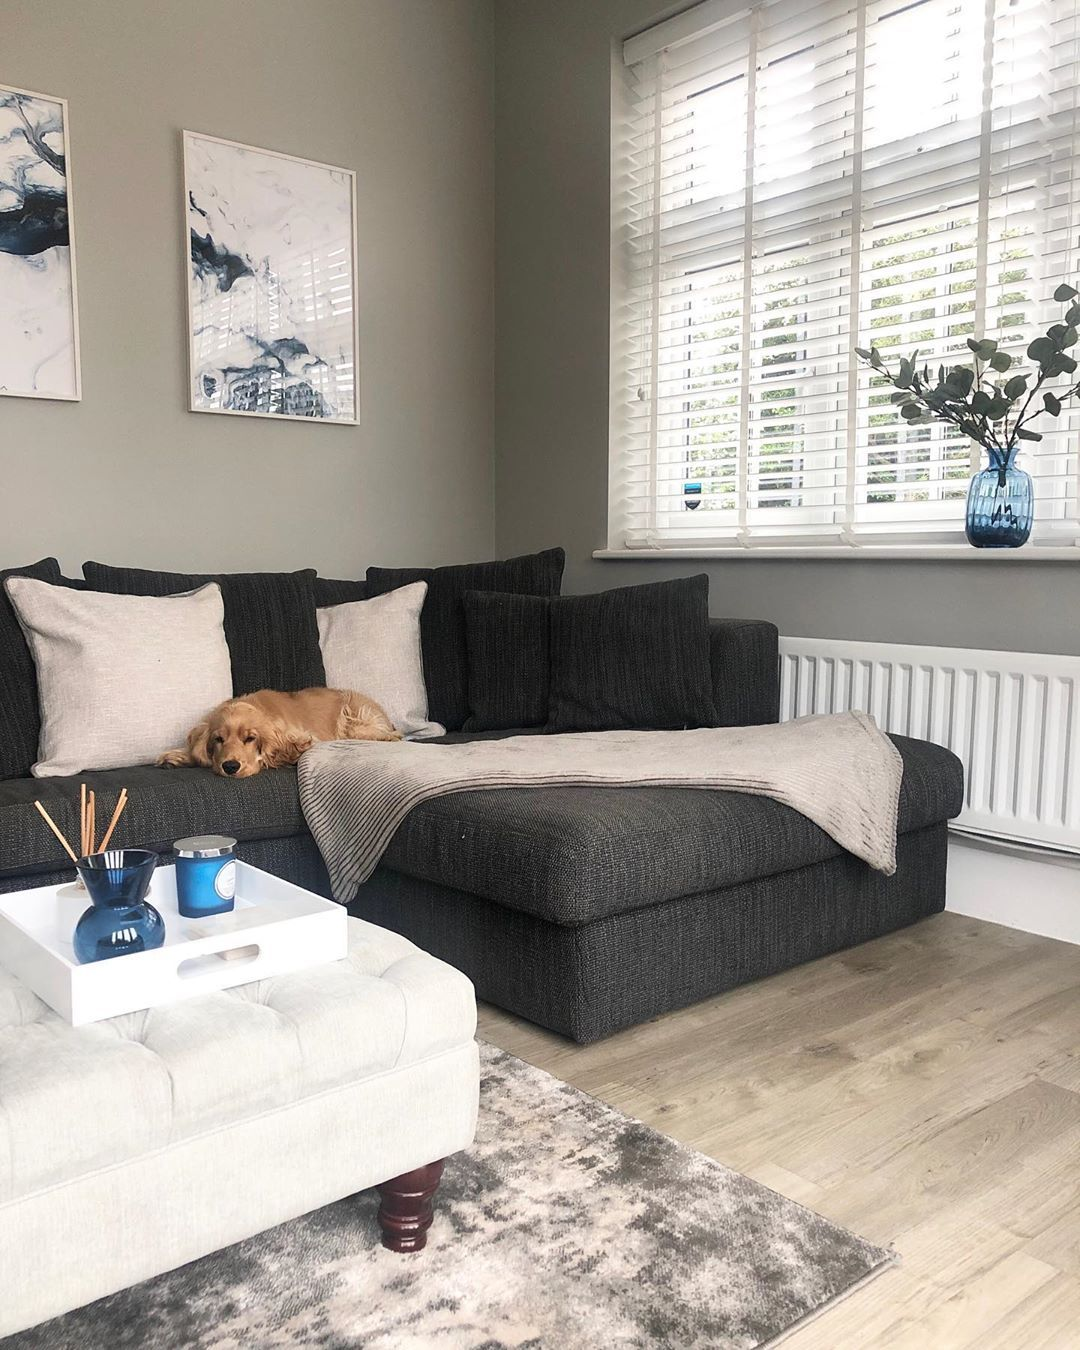 """@redrow_shaftesbury_newbuild on Instagram: """"Vinnie's favourite spot! We got this sofa second hand a few years ago for our old house and it's the comfiest sofa ever! The only problem…"""""""